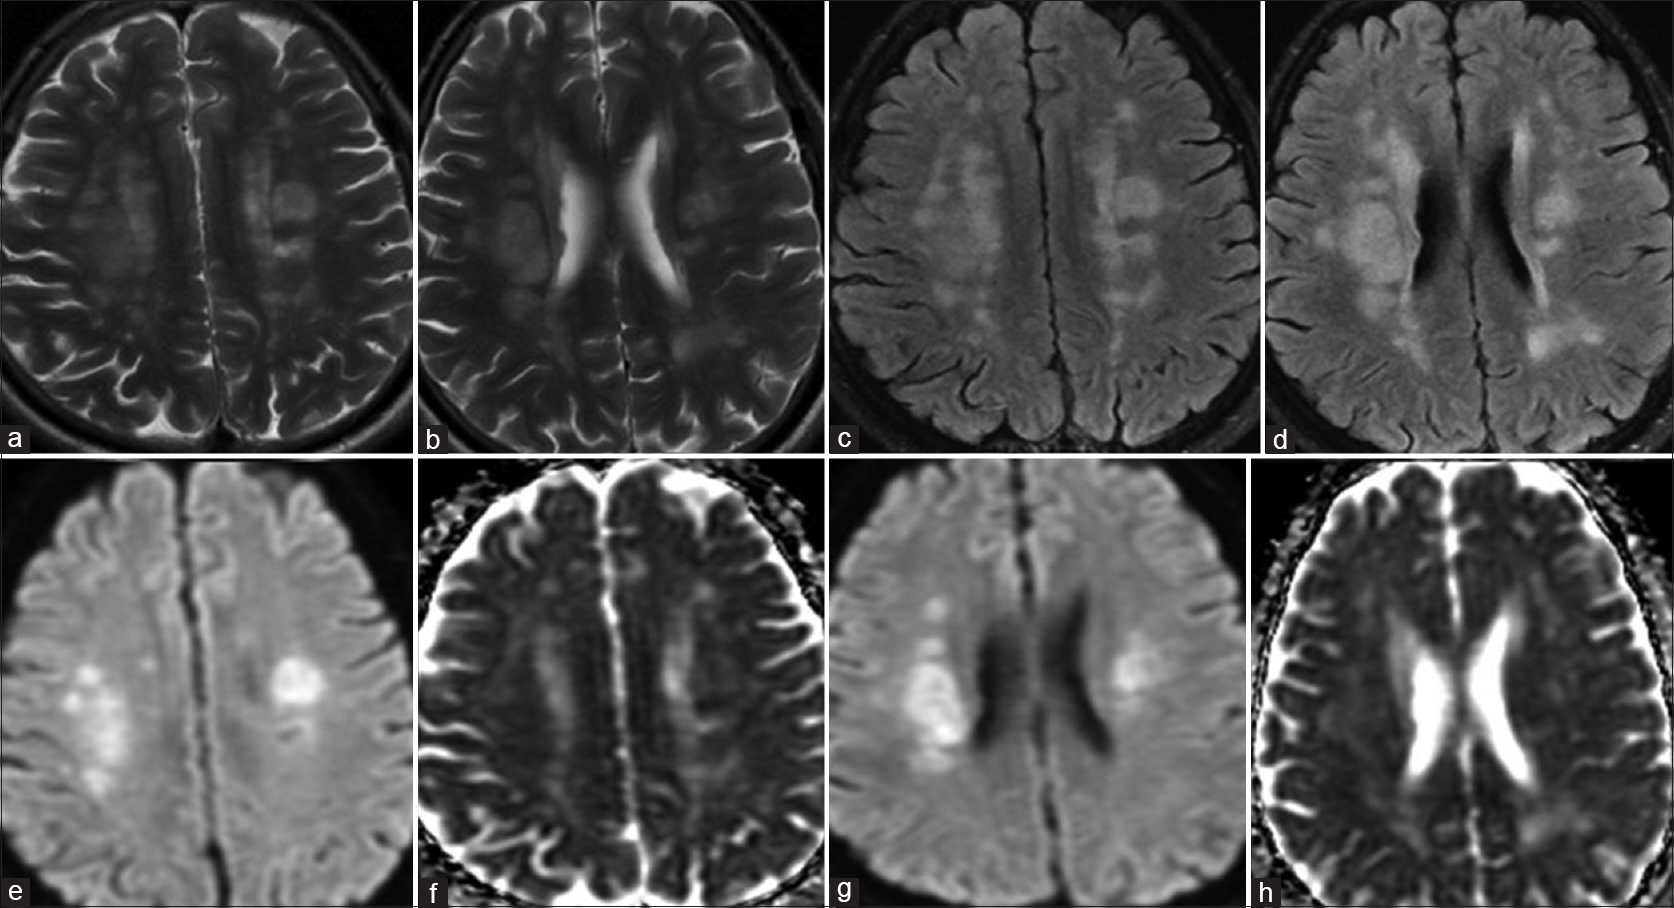 Figure 3: MRI brain of 19 year old male patient with fever, altered sensorium. The sensorium deteriorated on 8<sup>th</sup> day of onset of fever and MRI was acquired on 10<sup>th</sup> day after fever. Axial T2 (a and b) and FLAIR (c and d) images respectively which show multifocal fluffy T2/FLAIR hyper-intensities involving bilateral periventricular WM and fronto-parietal deep WM. Axial DWI (e and g, b = 1000) images and corresponding ADC maps (f and h) respectively showed presence of true diffusion restriction in the lesions